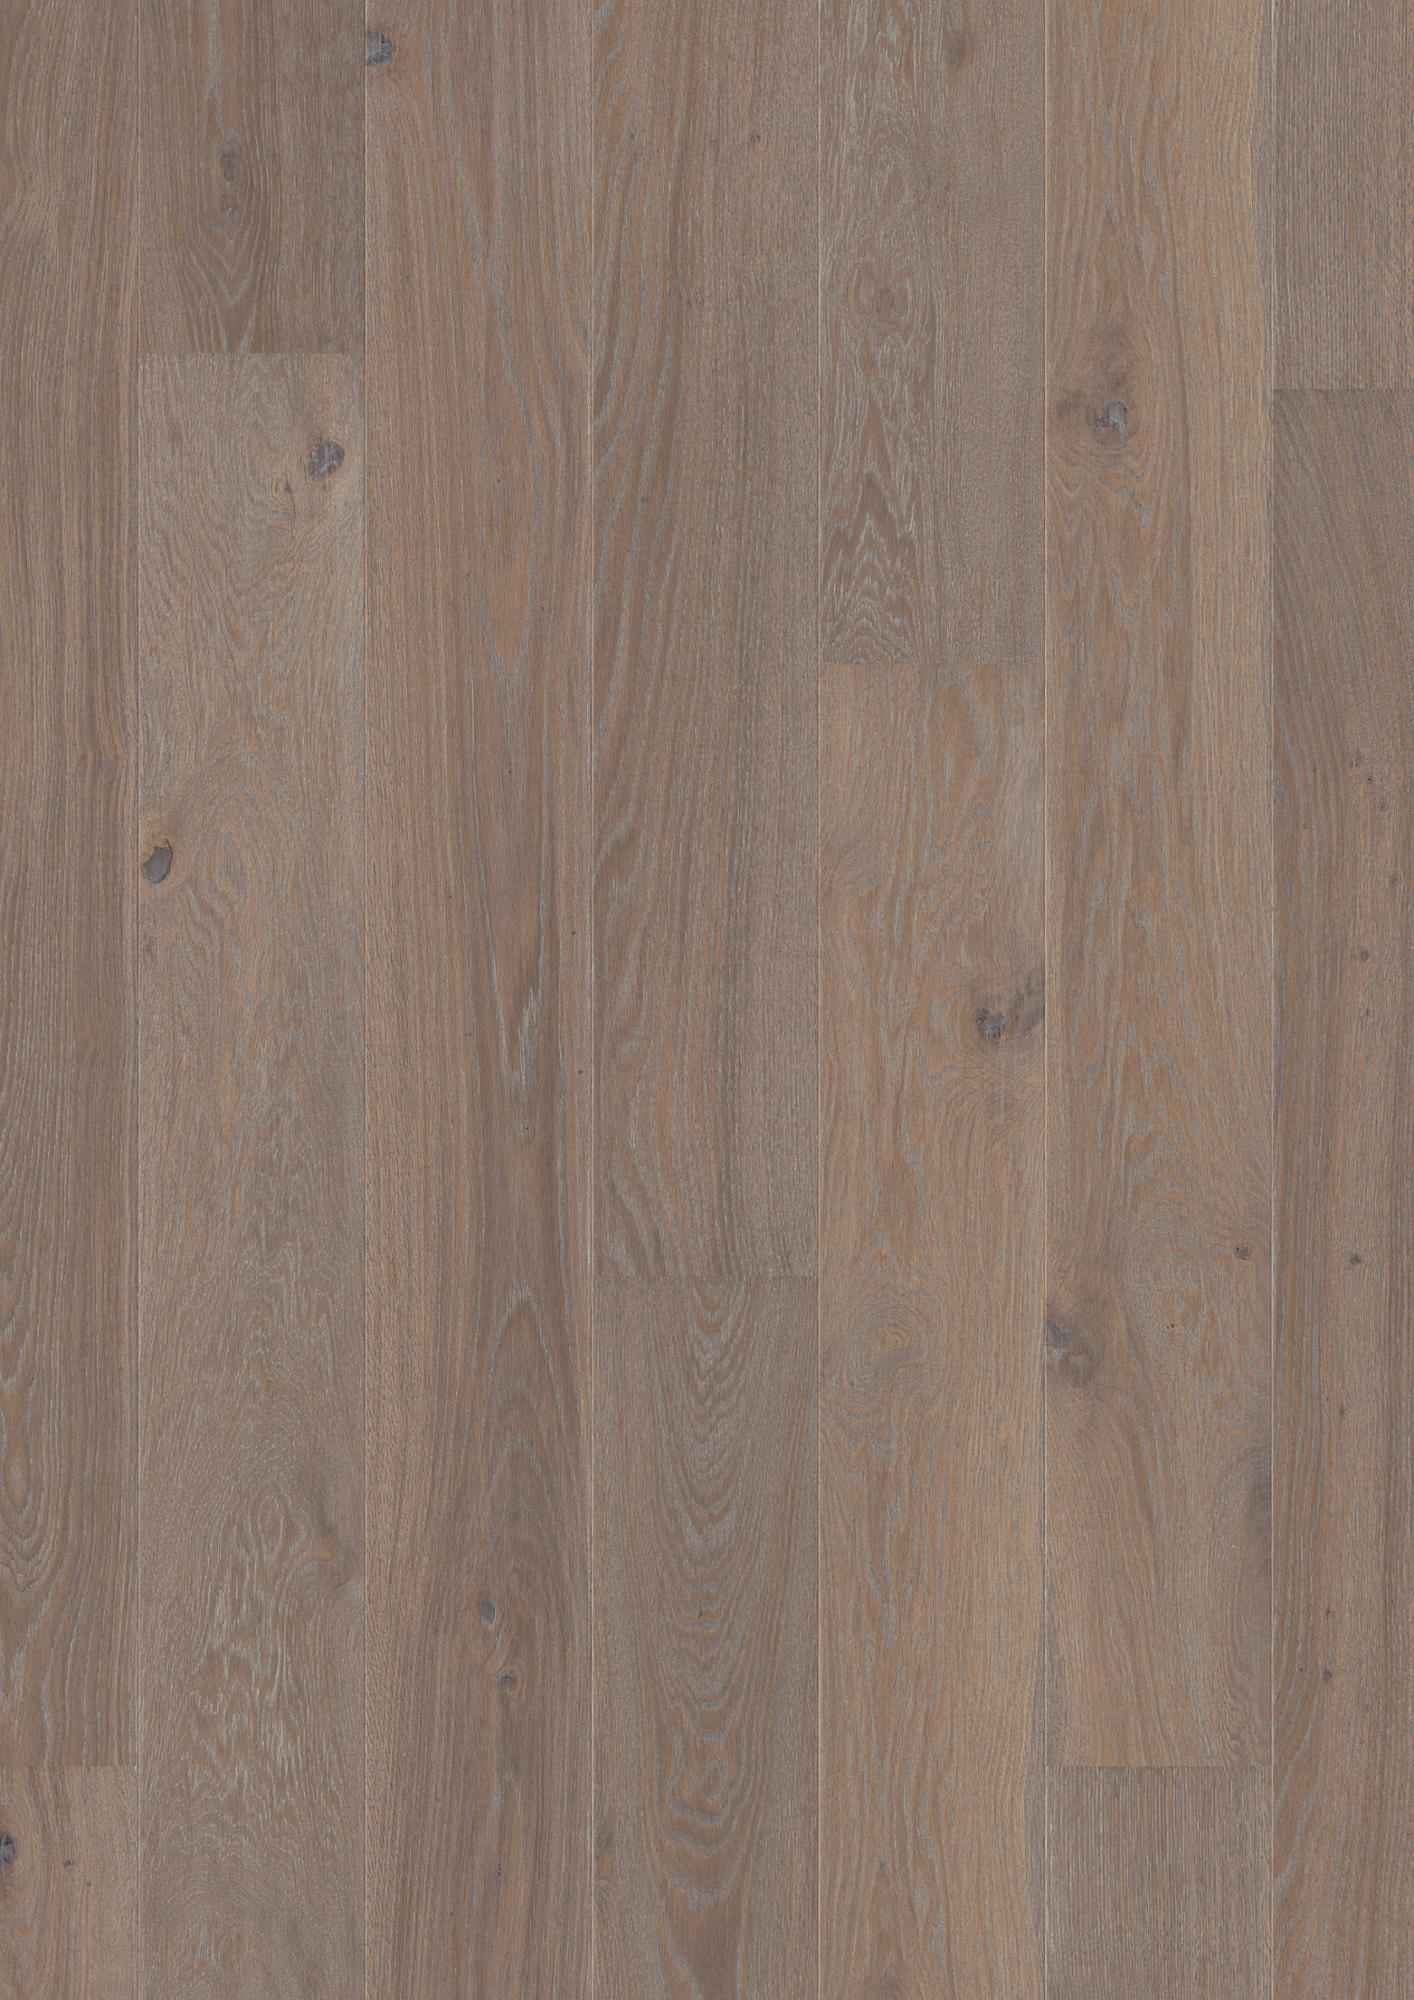 Oak India Grey, Live Pure lacquer, Brushed, Beveled 2V, Plank 181, 14x181x2200mm